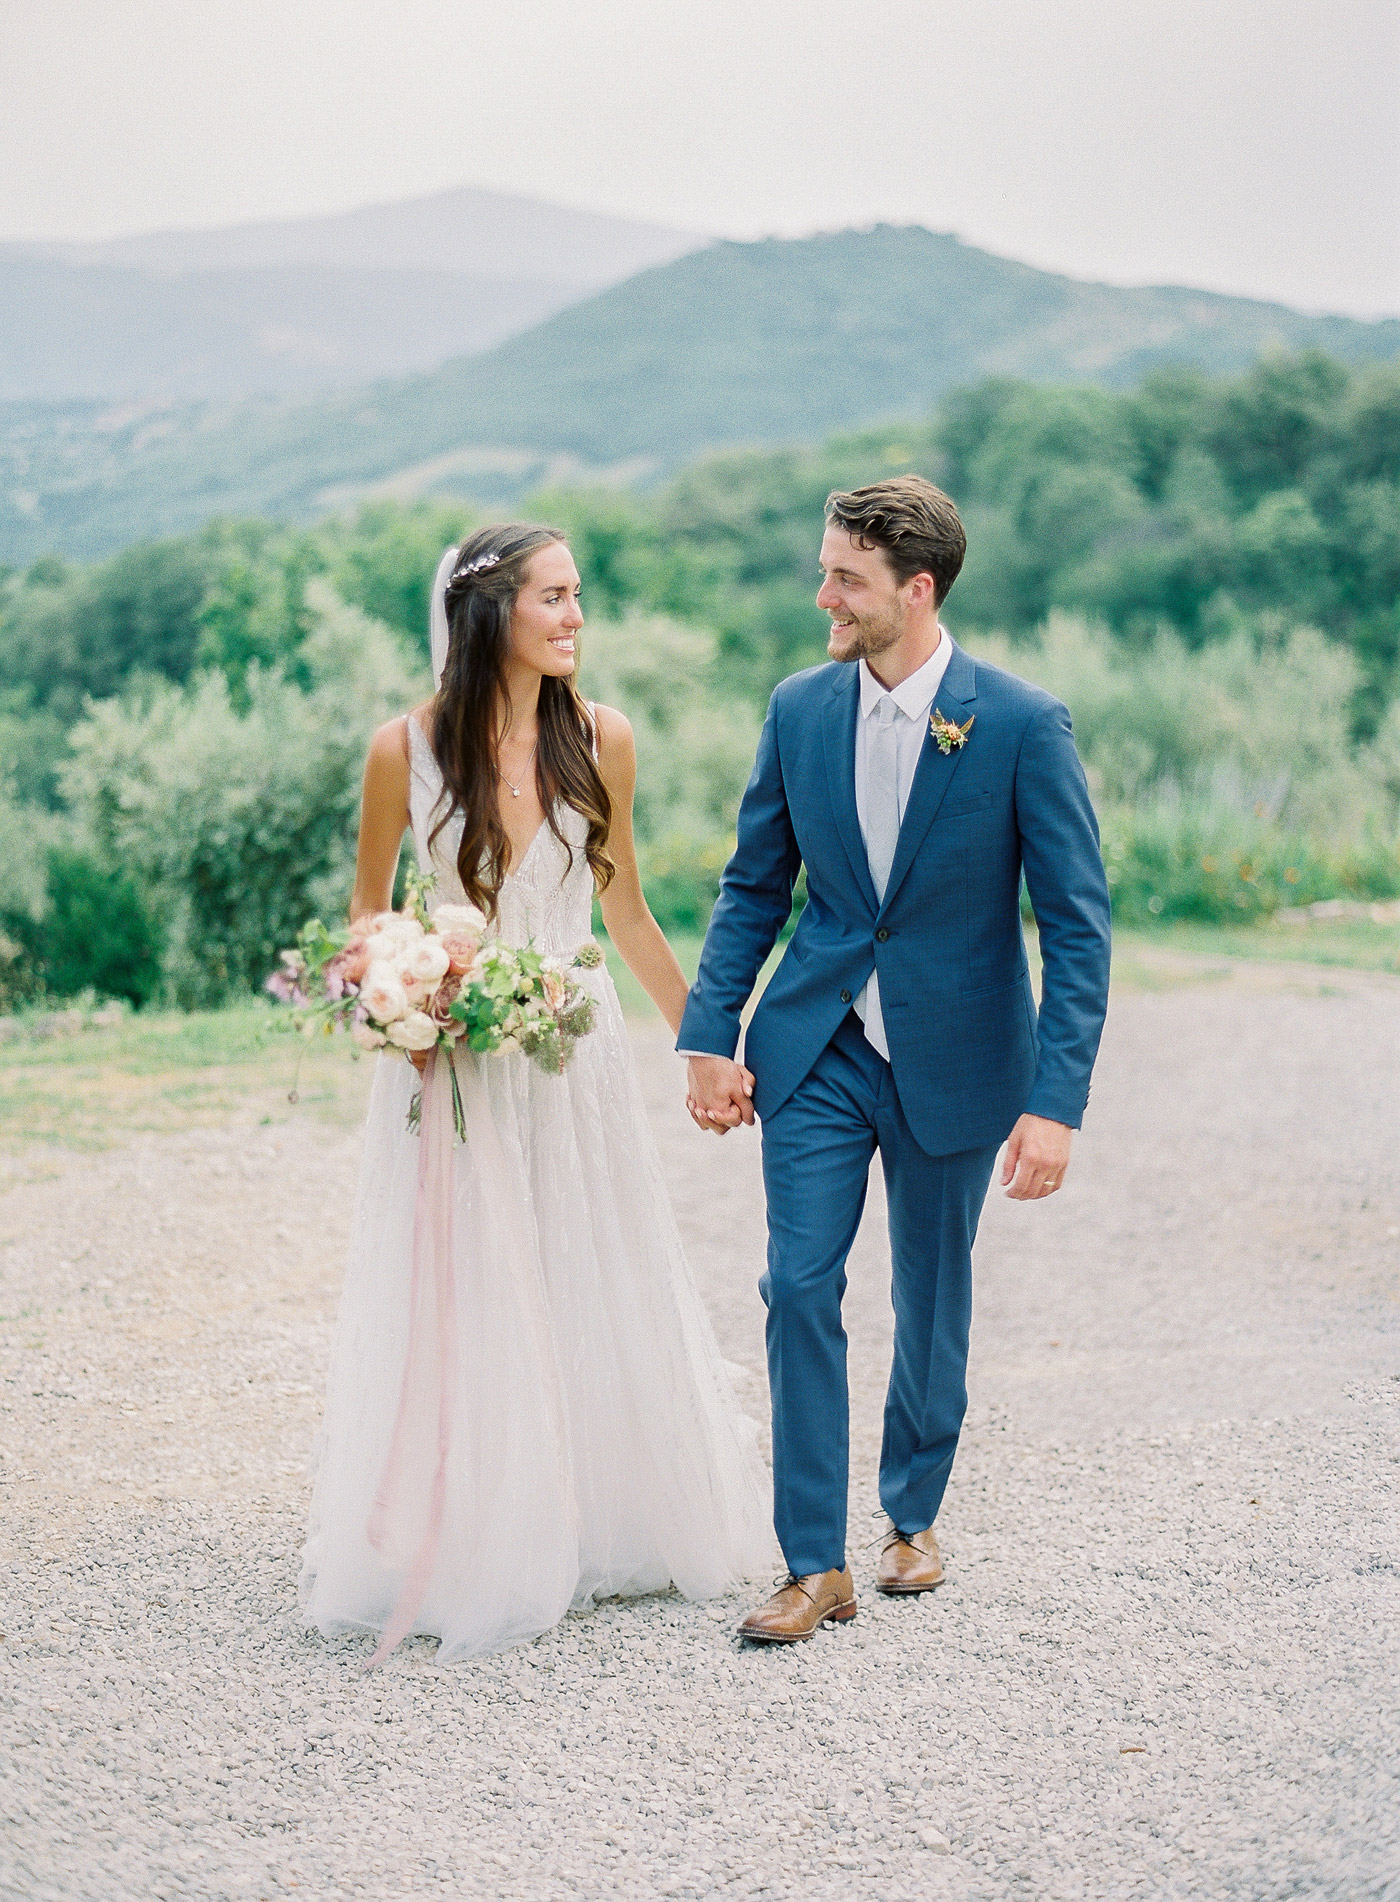 A Flower Filled Farmhouse Wedding On A Hilltop In Umbria Italy